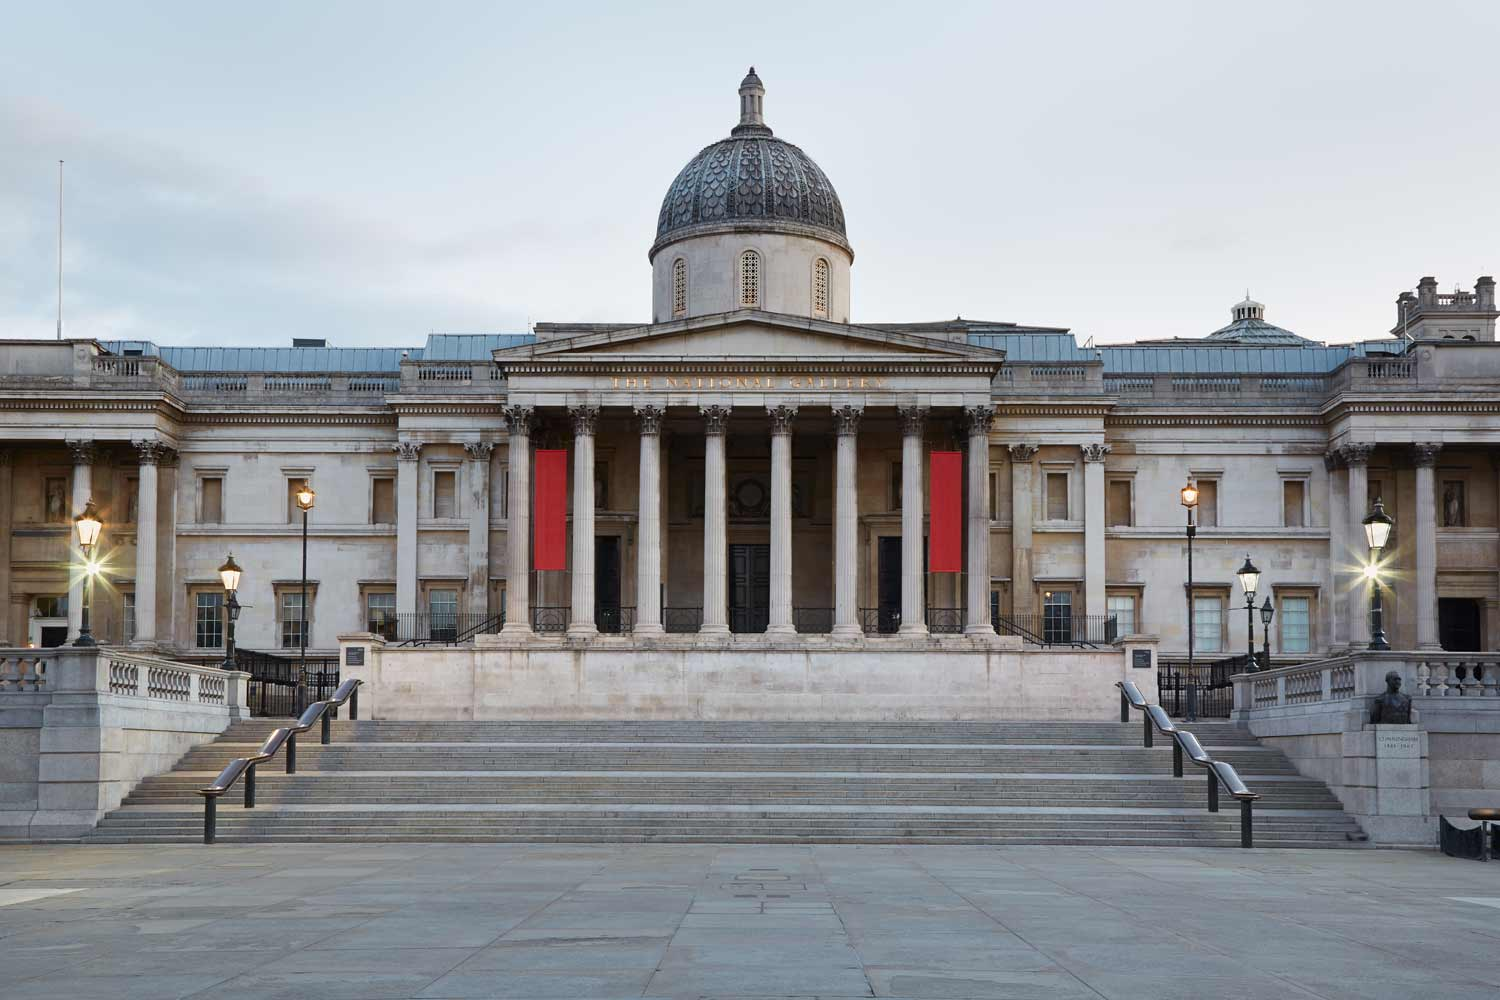 The National Gallery building in the early morning in London